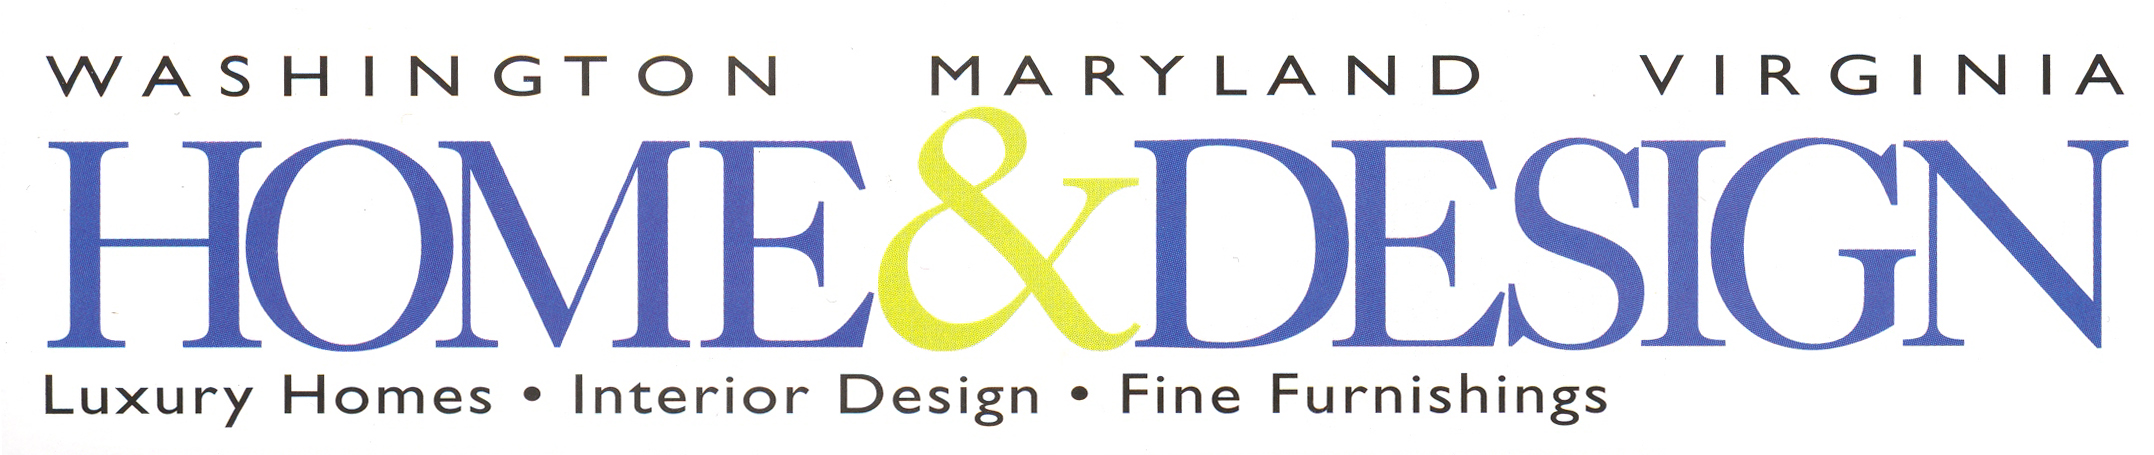 Washington Maryland Virginia Home & Design Logo